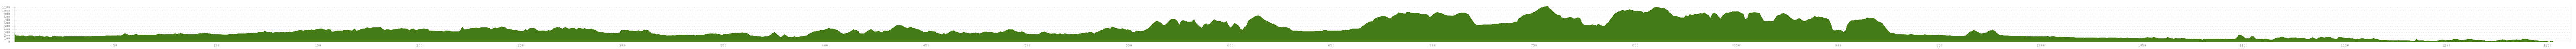 Elevation profile Cycle Tour France from North-East to South-West